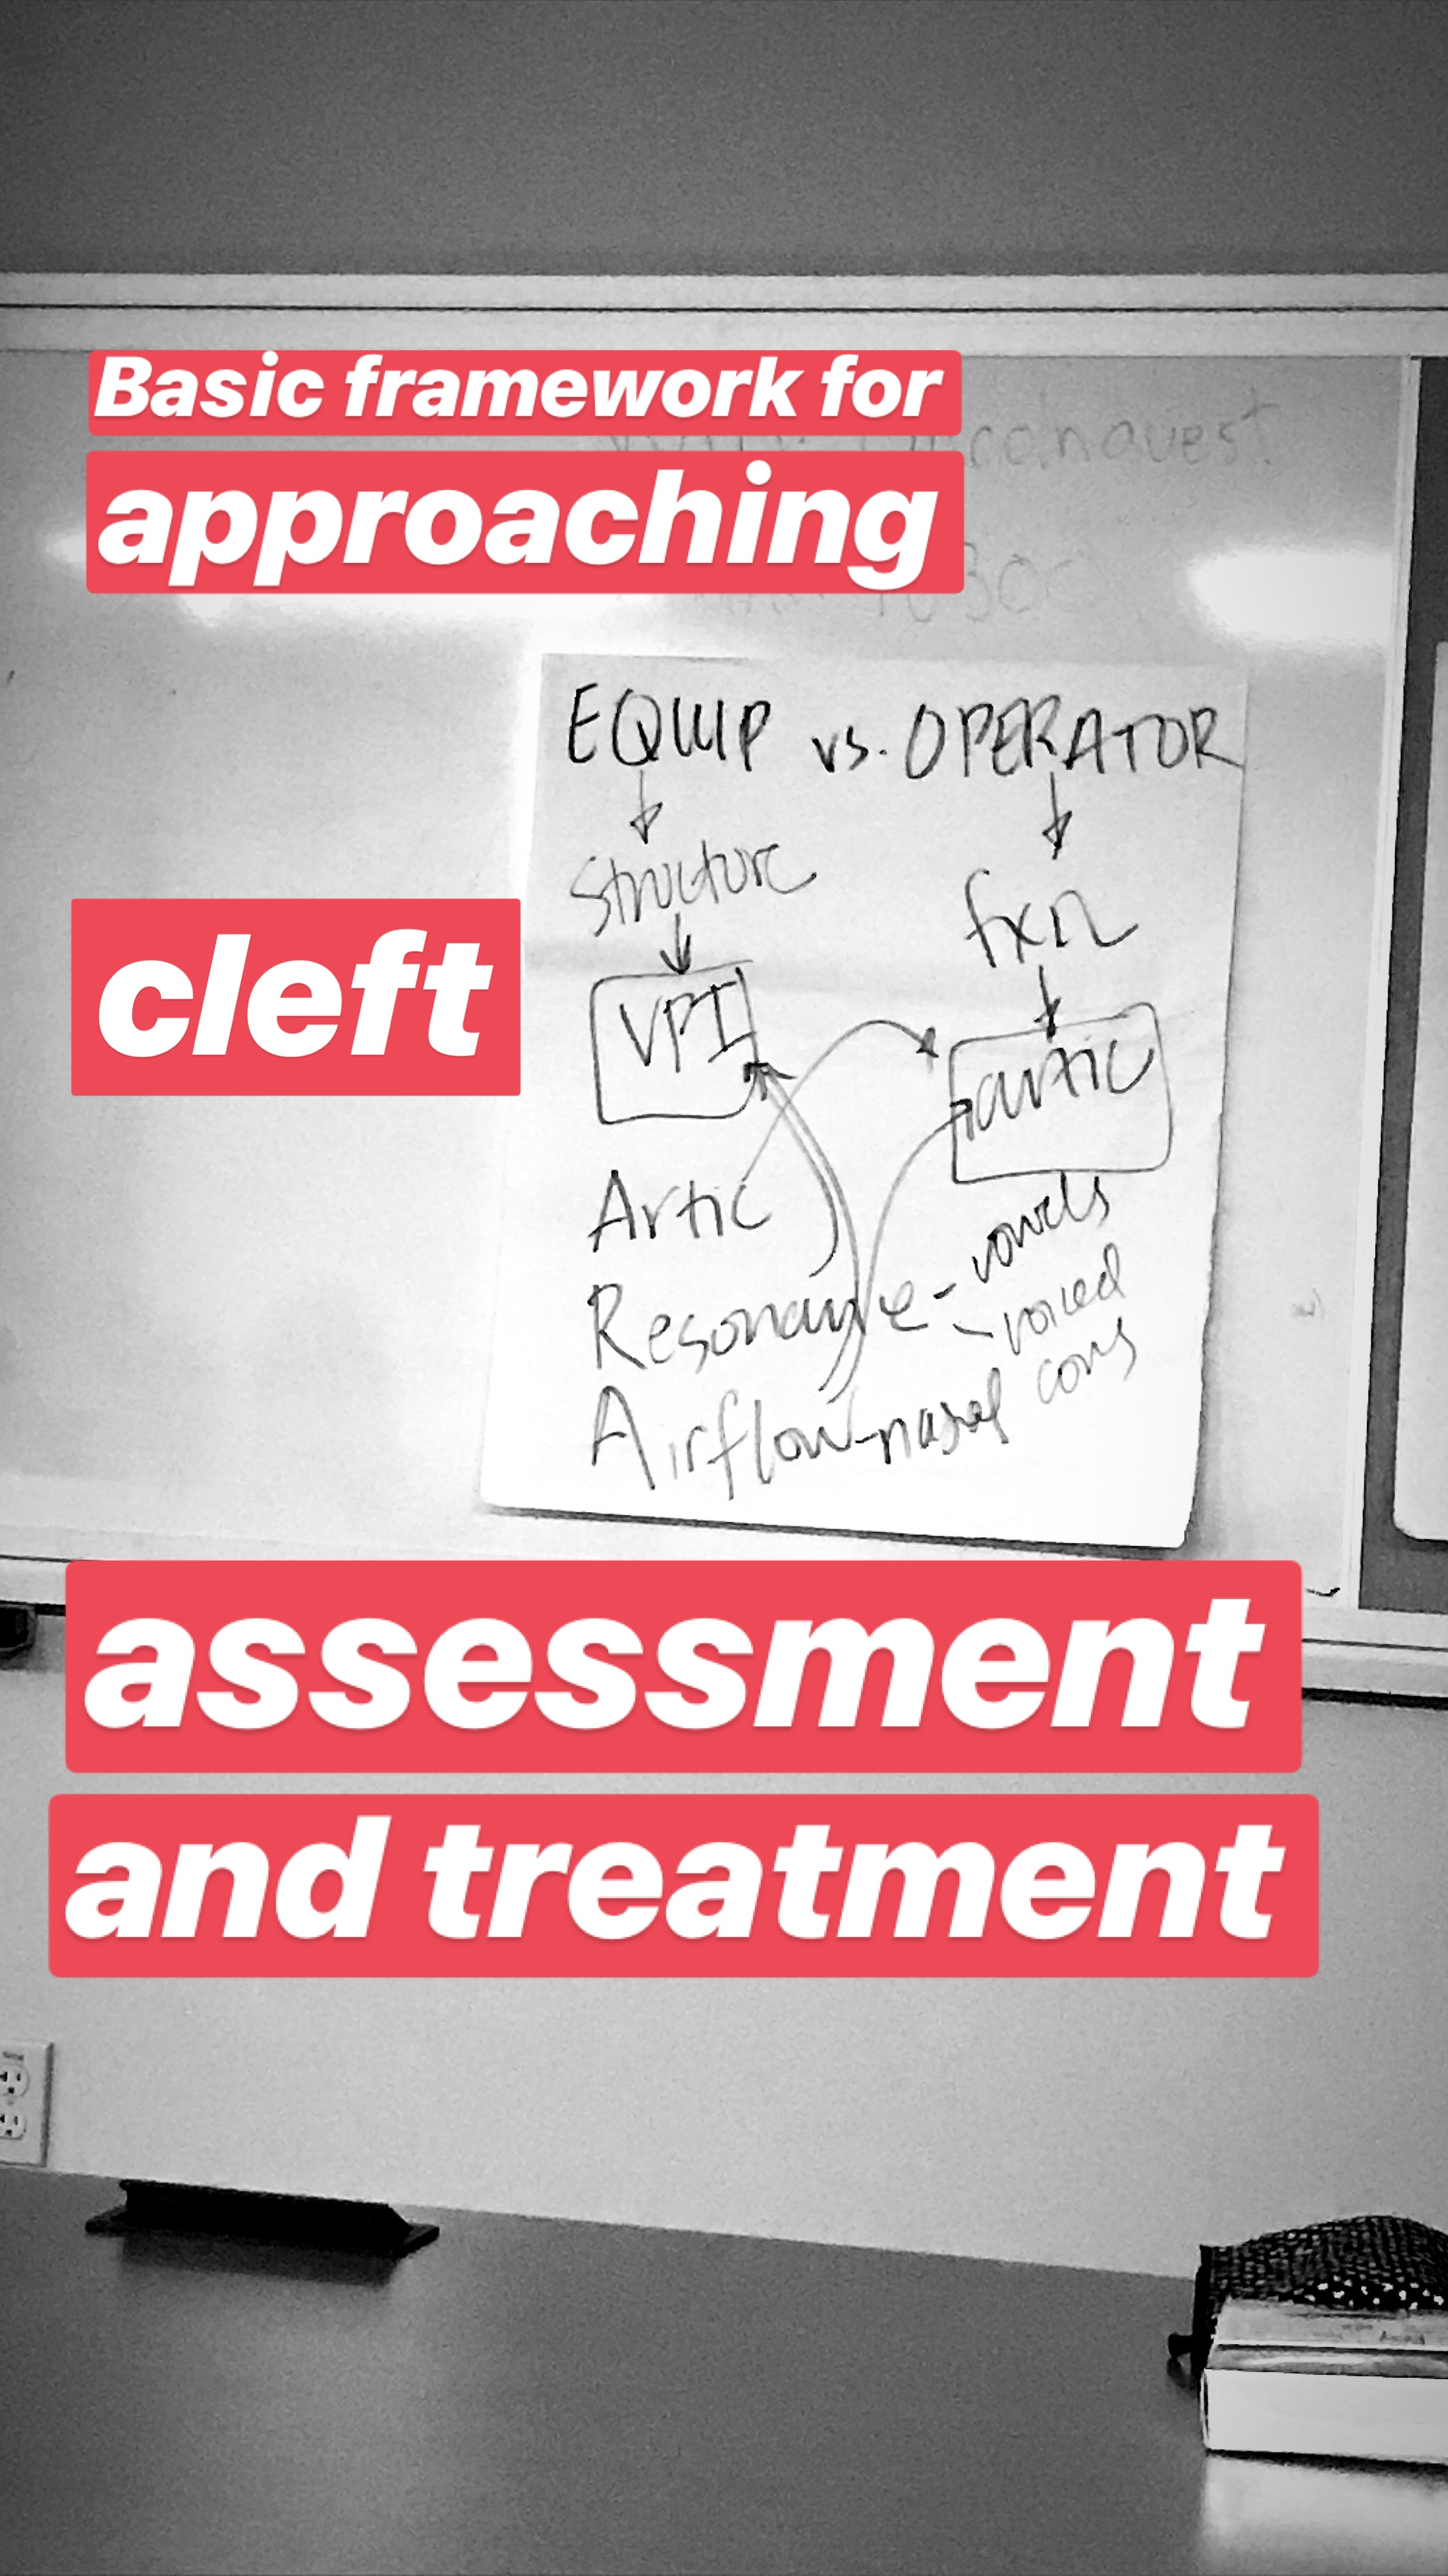 Cleft assessment & treatment framework 2